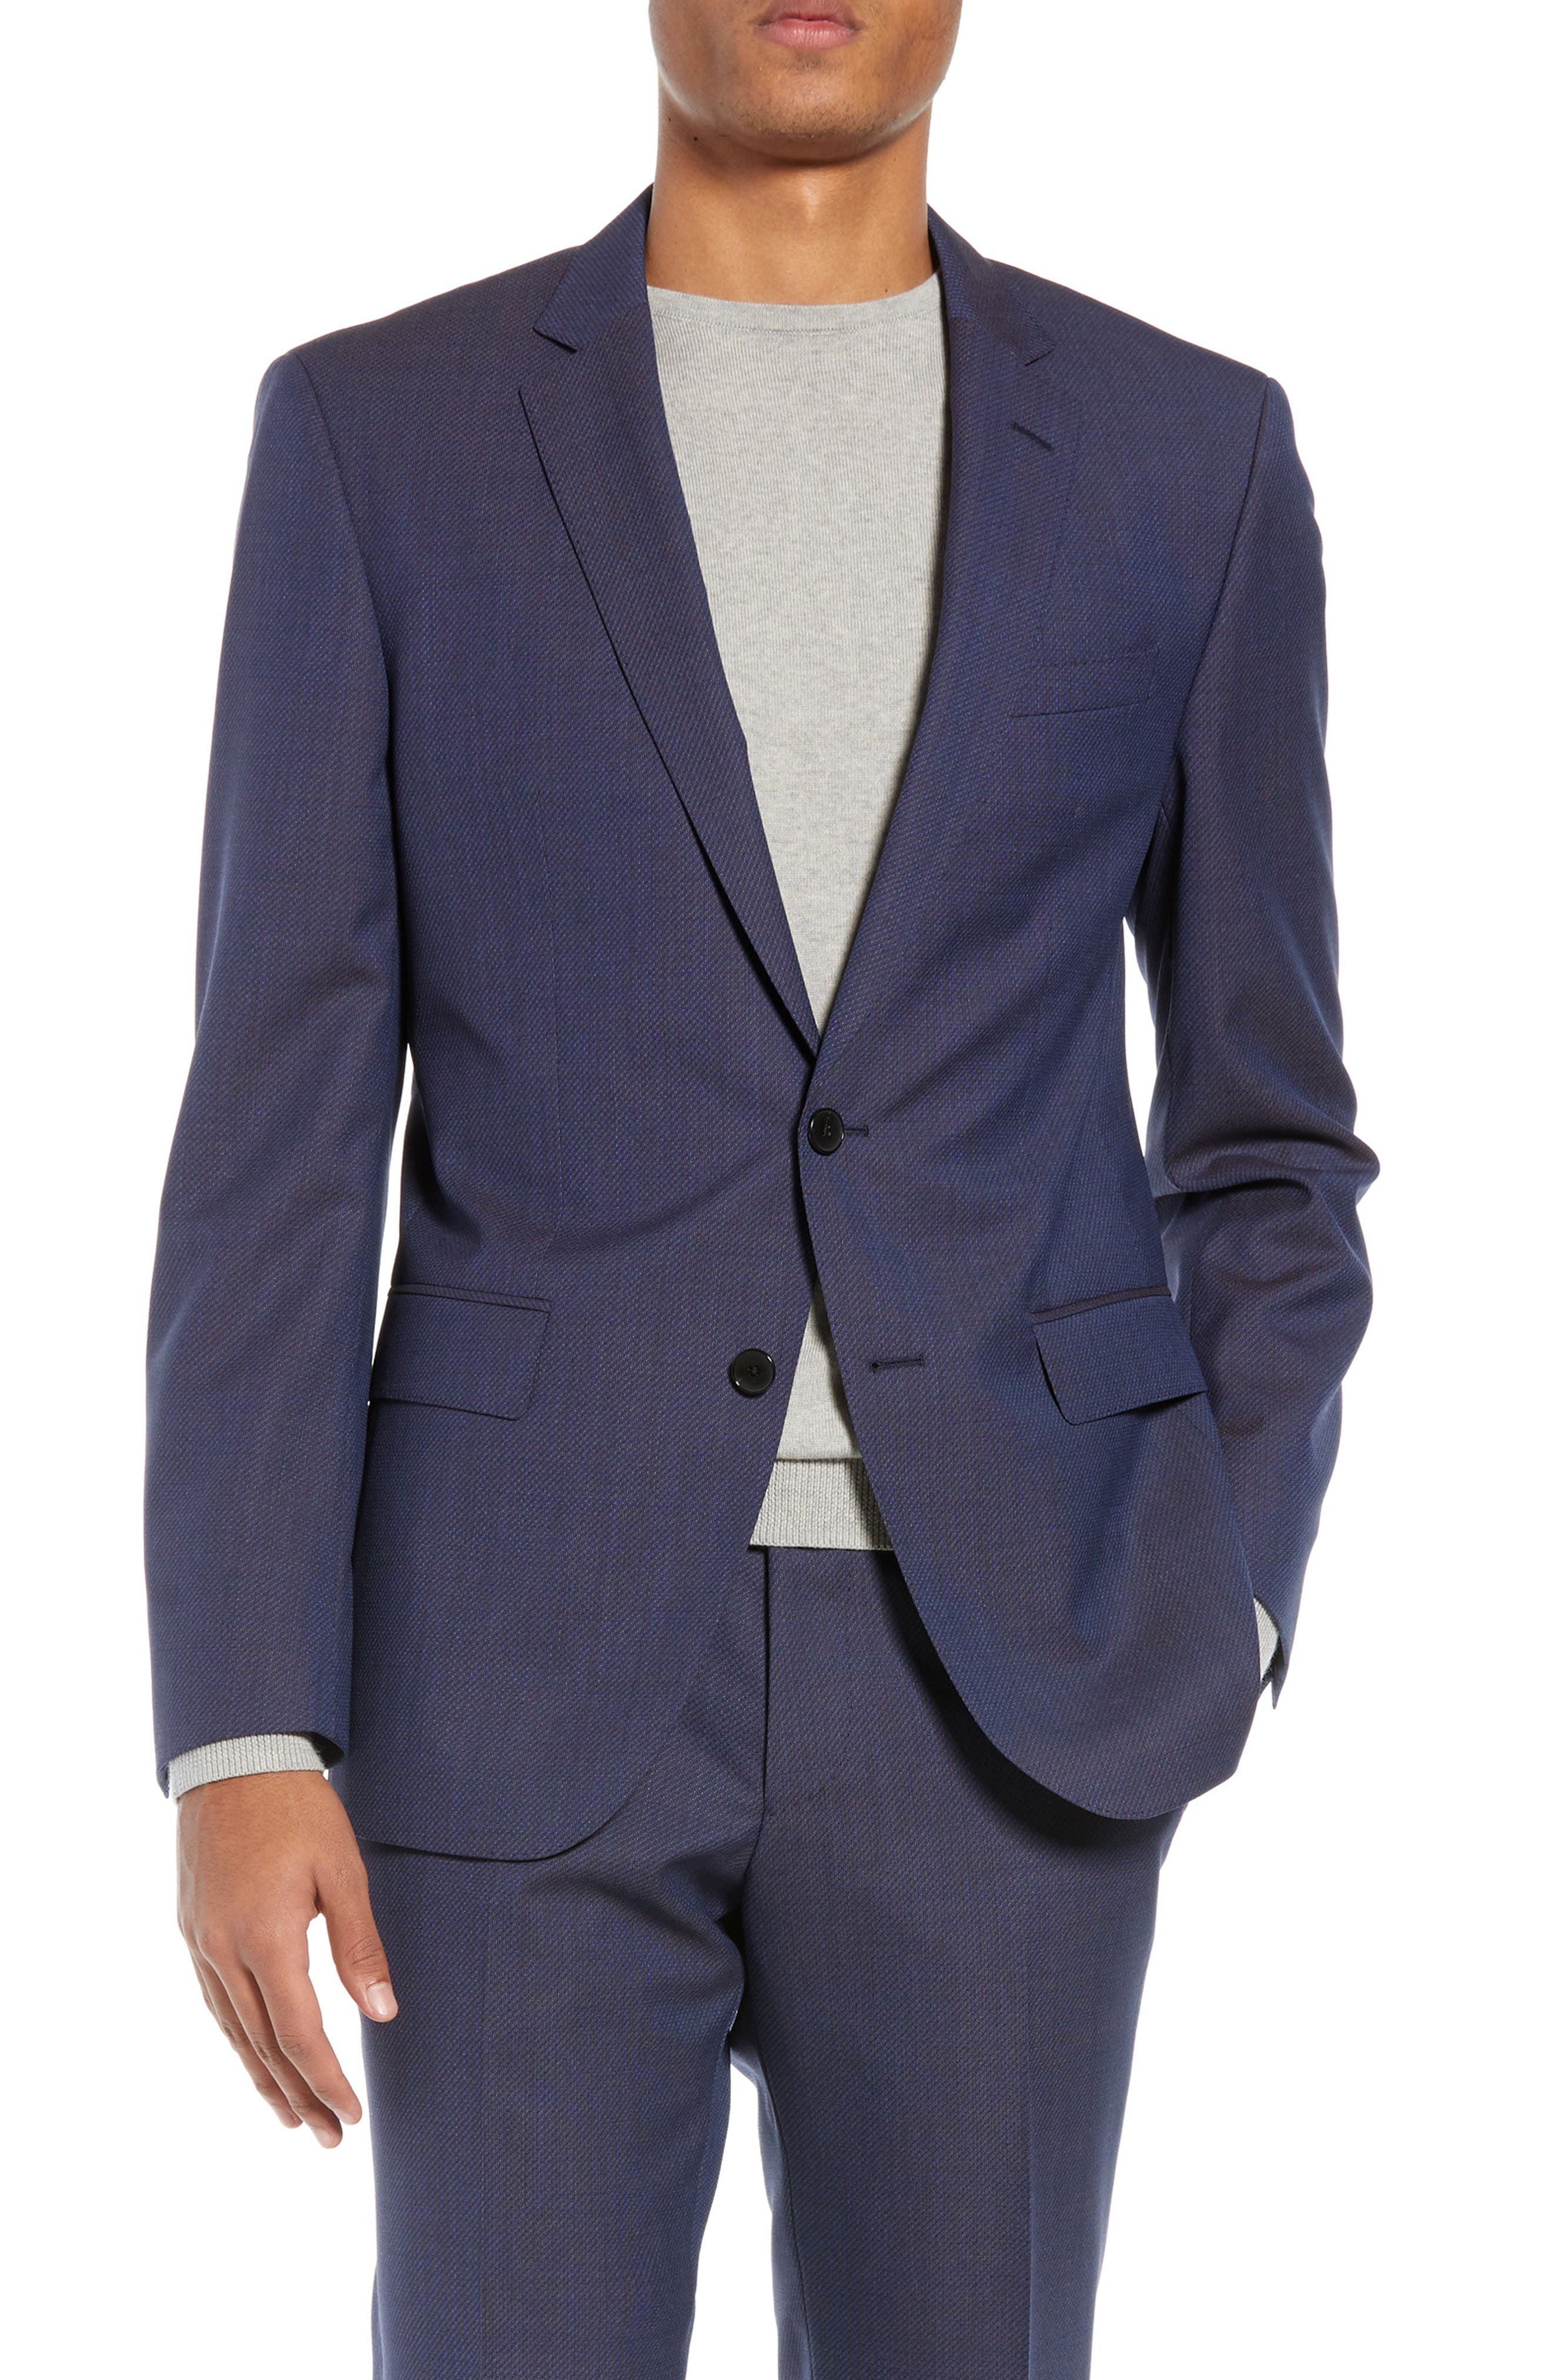 Huge/Genius Trim Fit Solid Wool Suit,                             Alternate thumbnail 5, color,                             OPEN BLUE